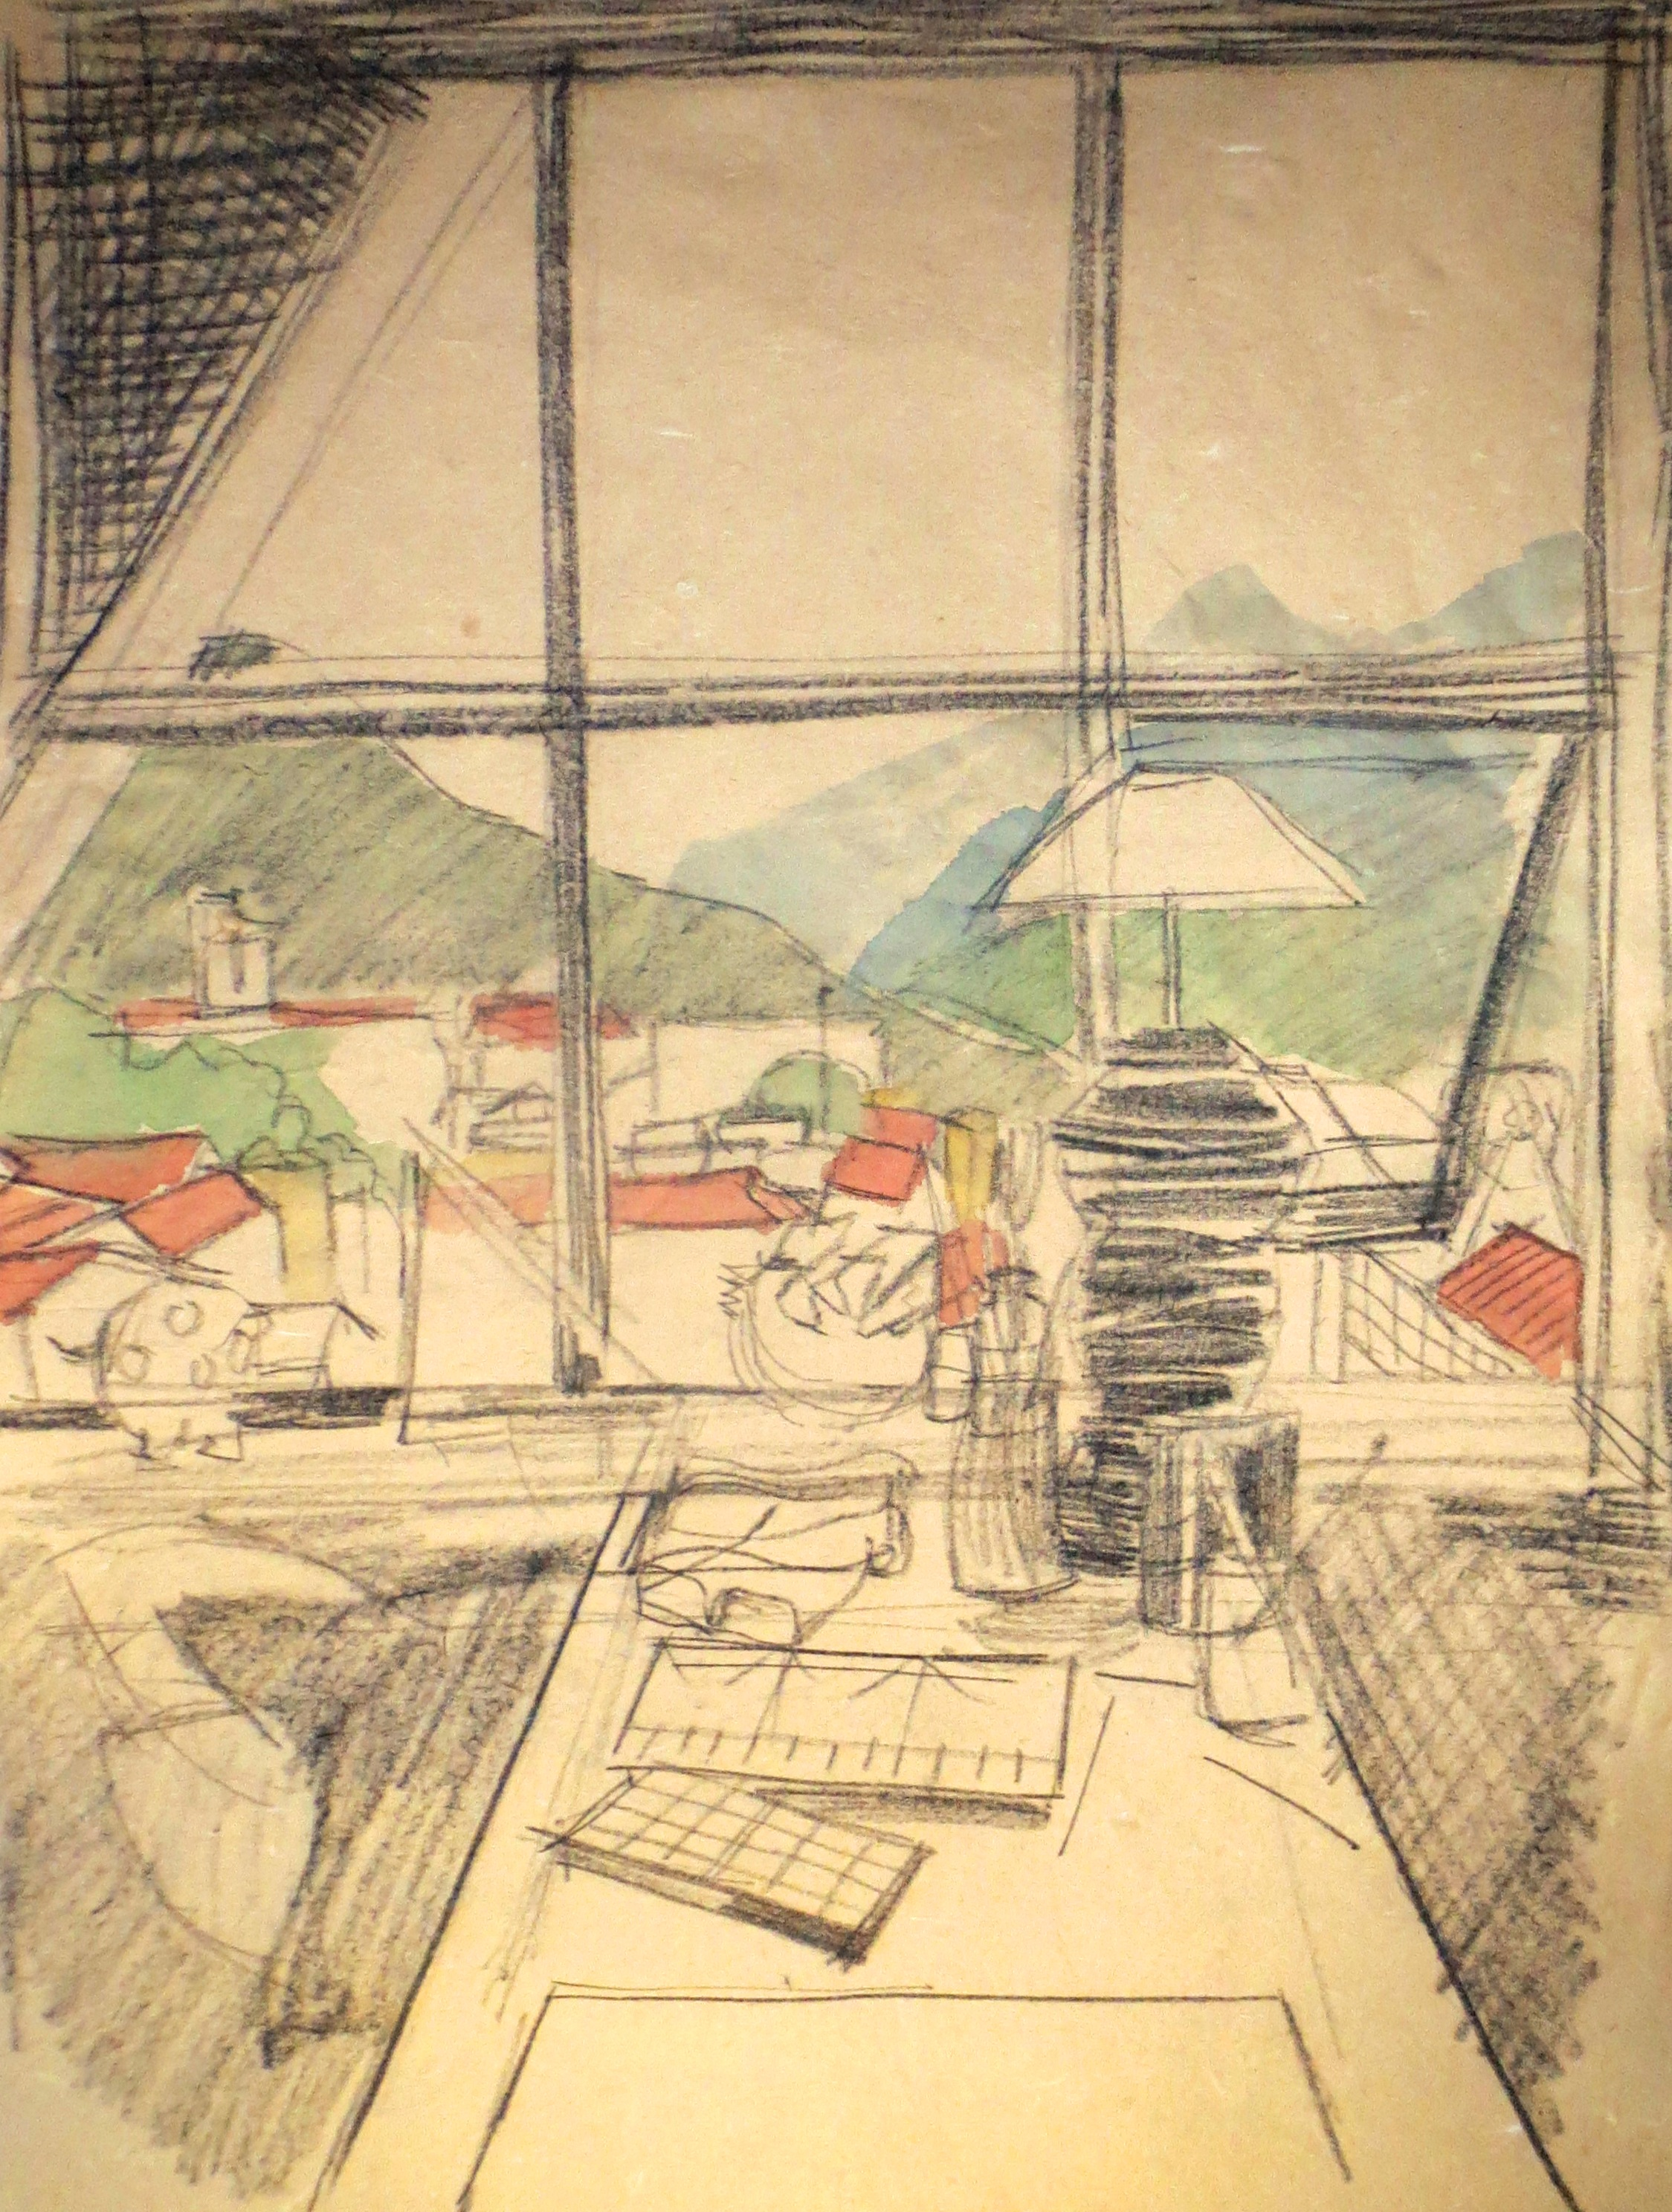 The artist's window - Sapa studio